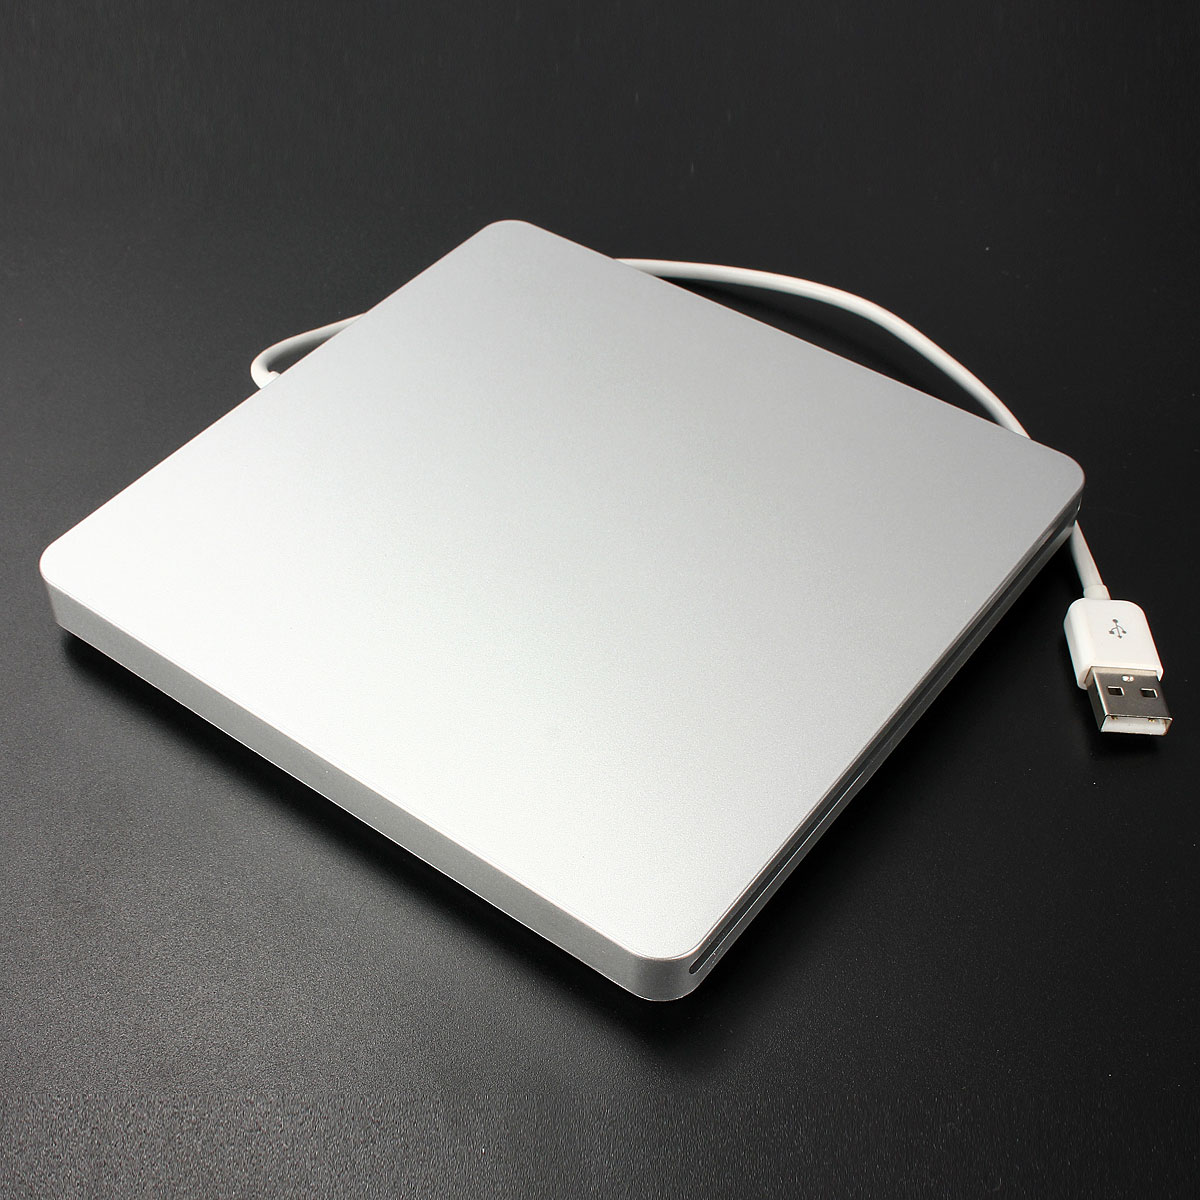 external usb dvd cd rw drive writer player for macbook air. Black Bedroom Furniture Sets. Home Design Ideas